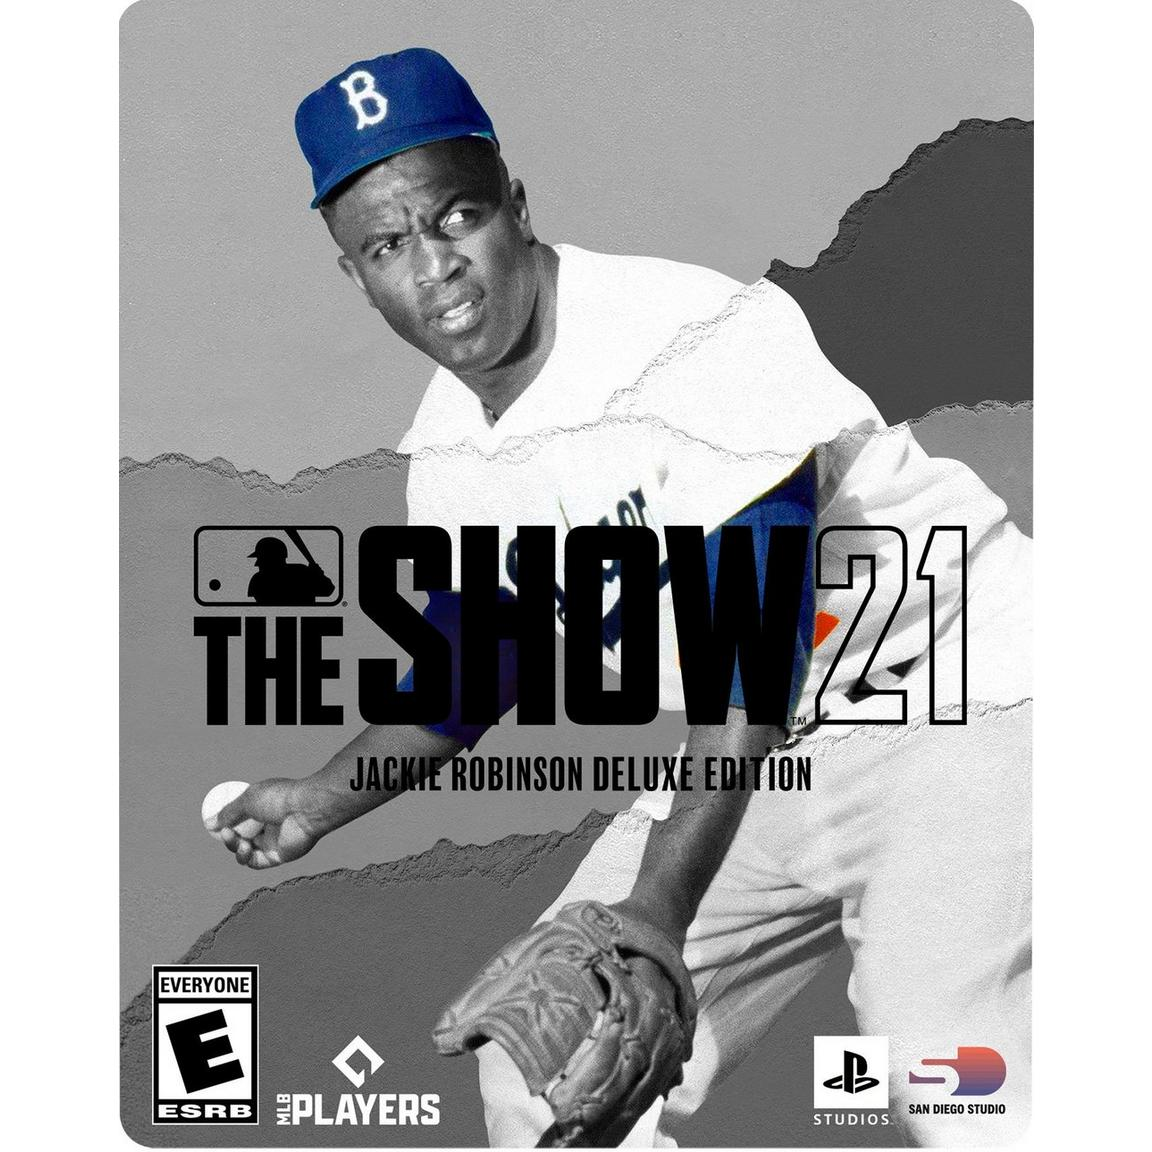 MLB The Show 21 Jackie Robinson Deluxe Edition for Xbox One